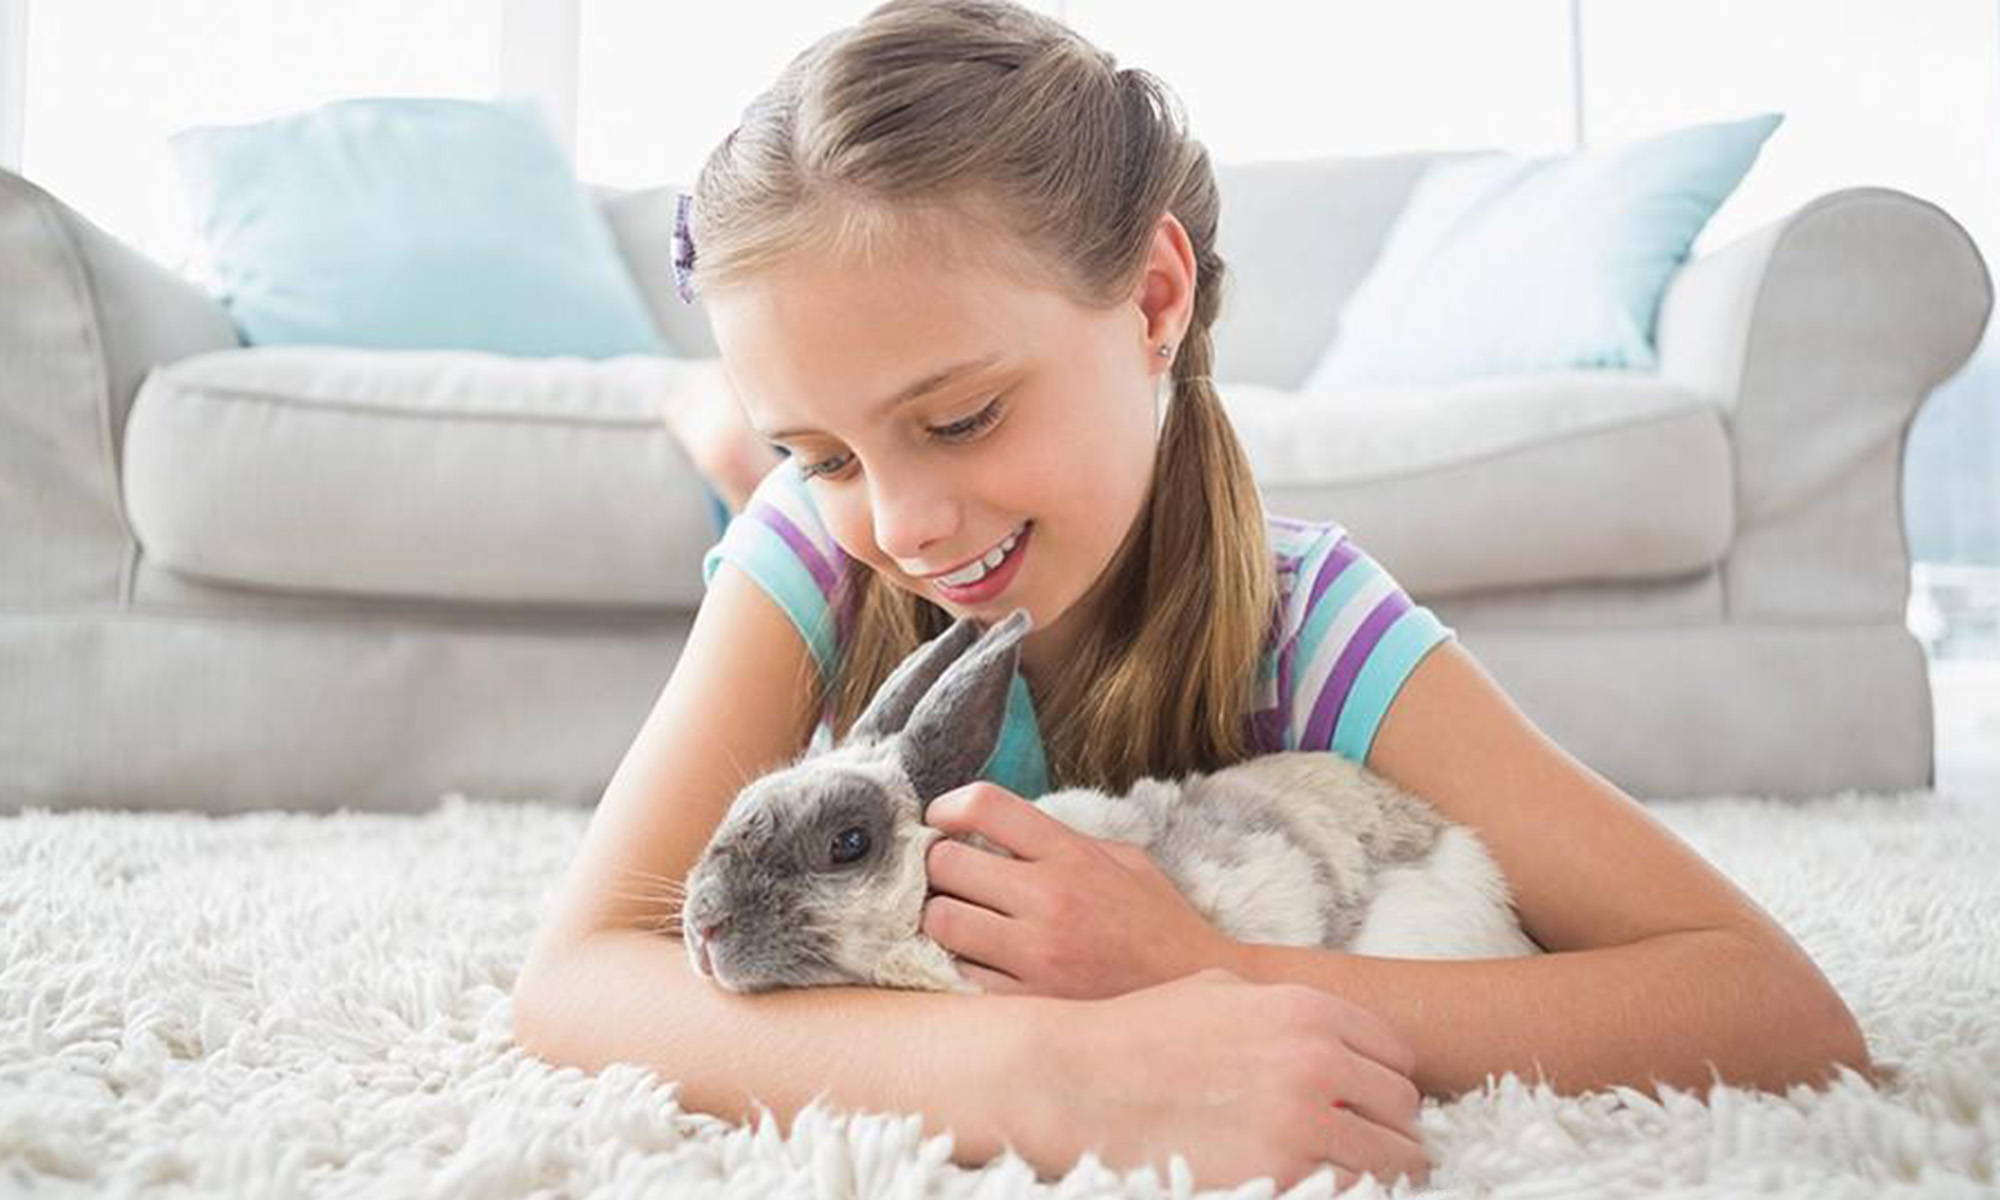 How to Take Care of a Baby Bunny